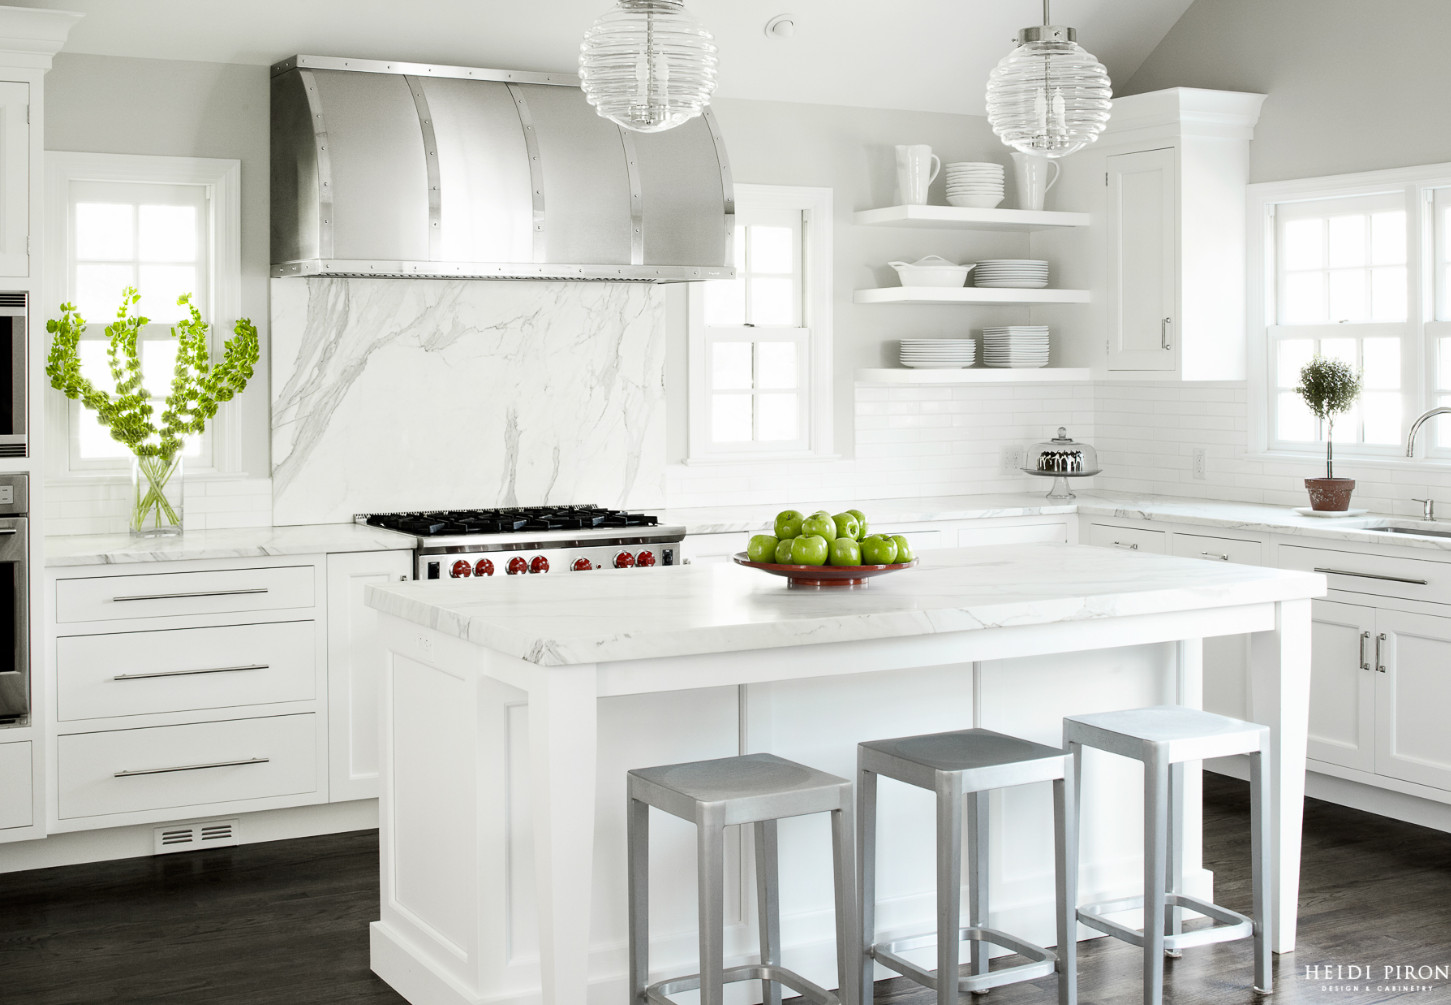 Kitchen Hood. White Kitchen hood. The custom-made brushed and polished range hood is the focal point of this kitchen. #Kitchen #Hood #KitchenHood Heidi Piron Design & Cabinetry.